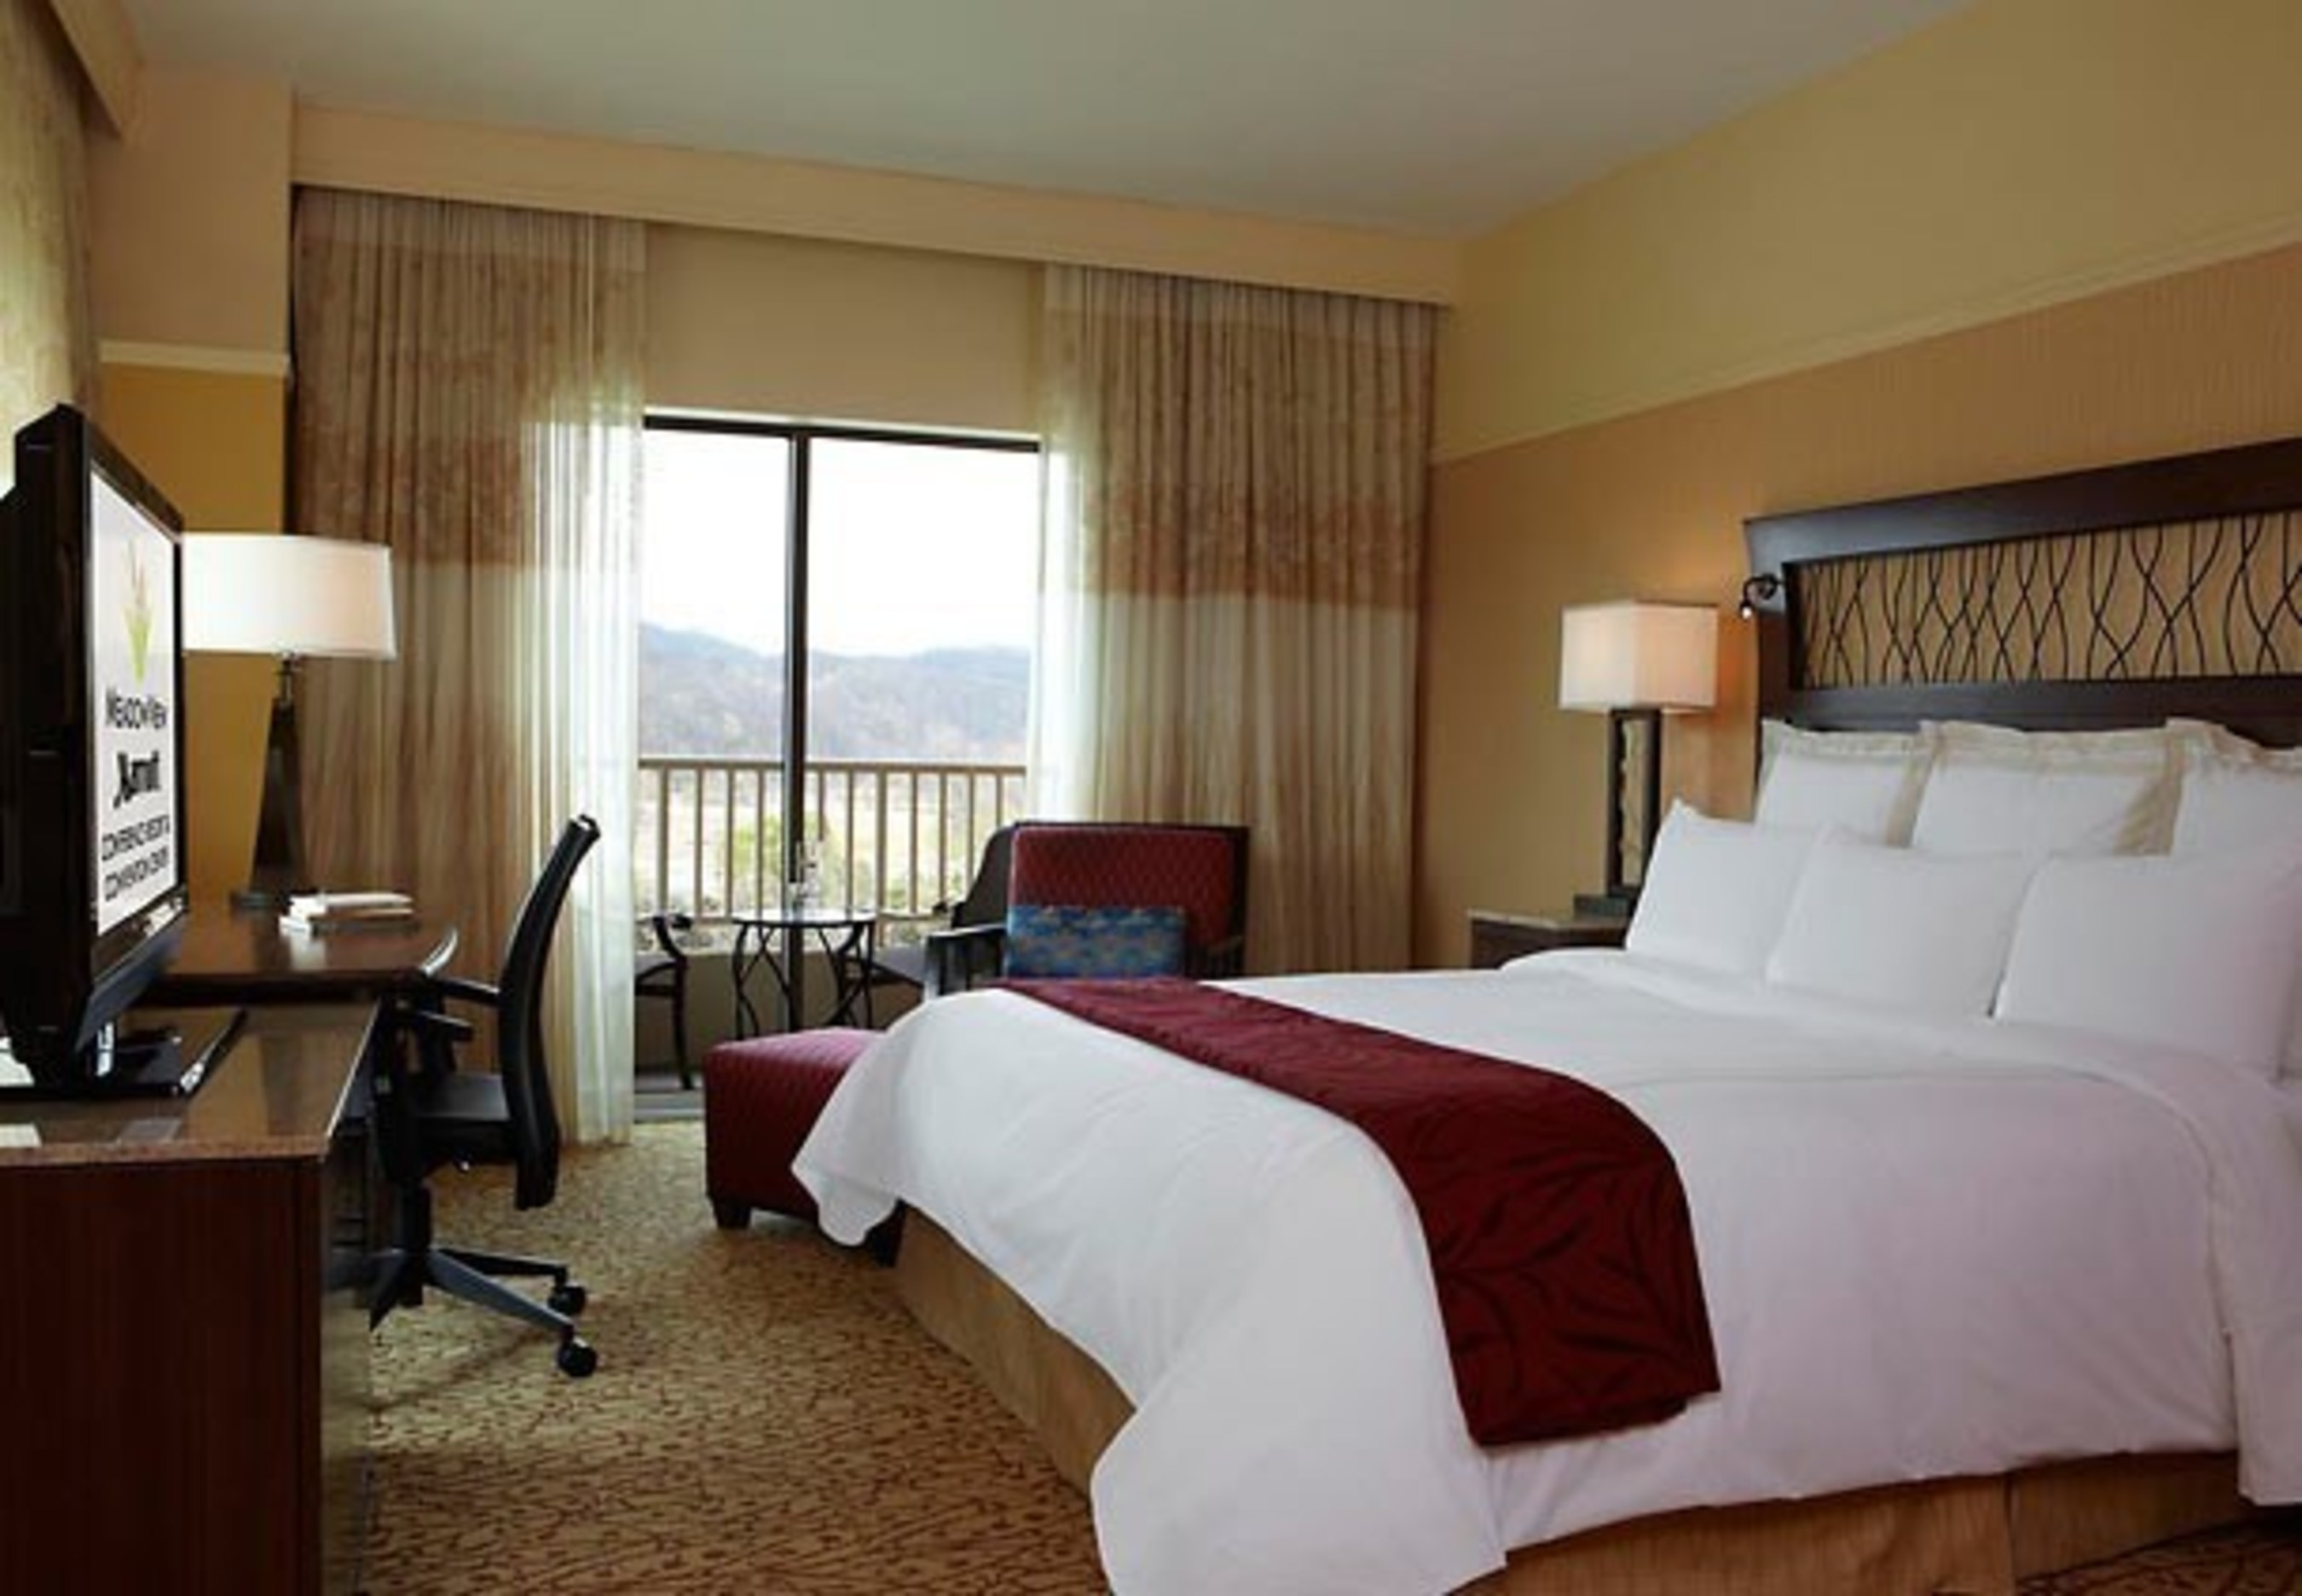 MeadowView Conference Resort & Convention Center in Kingsport, Tennessee has announced two new vacation packages just in time for the holiday season. The first includes complimentary breakfast and holiday treats, and the second includes a $25 daily resort credit. For information, visit www.marriott.com/TRICC or call 1-423-578-6600.